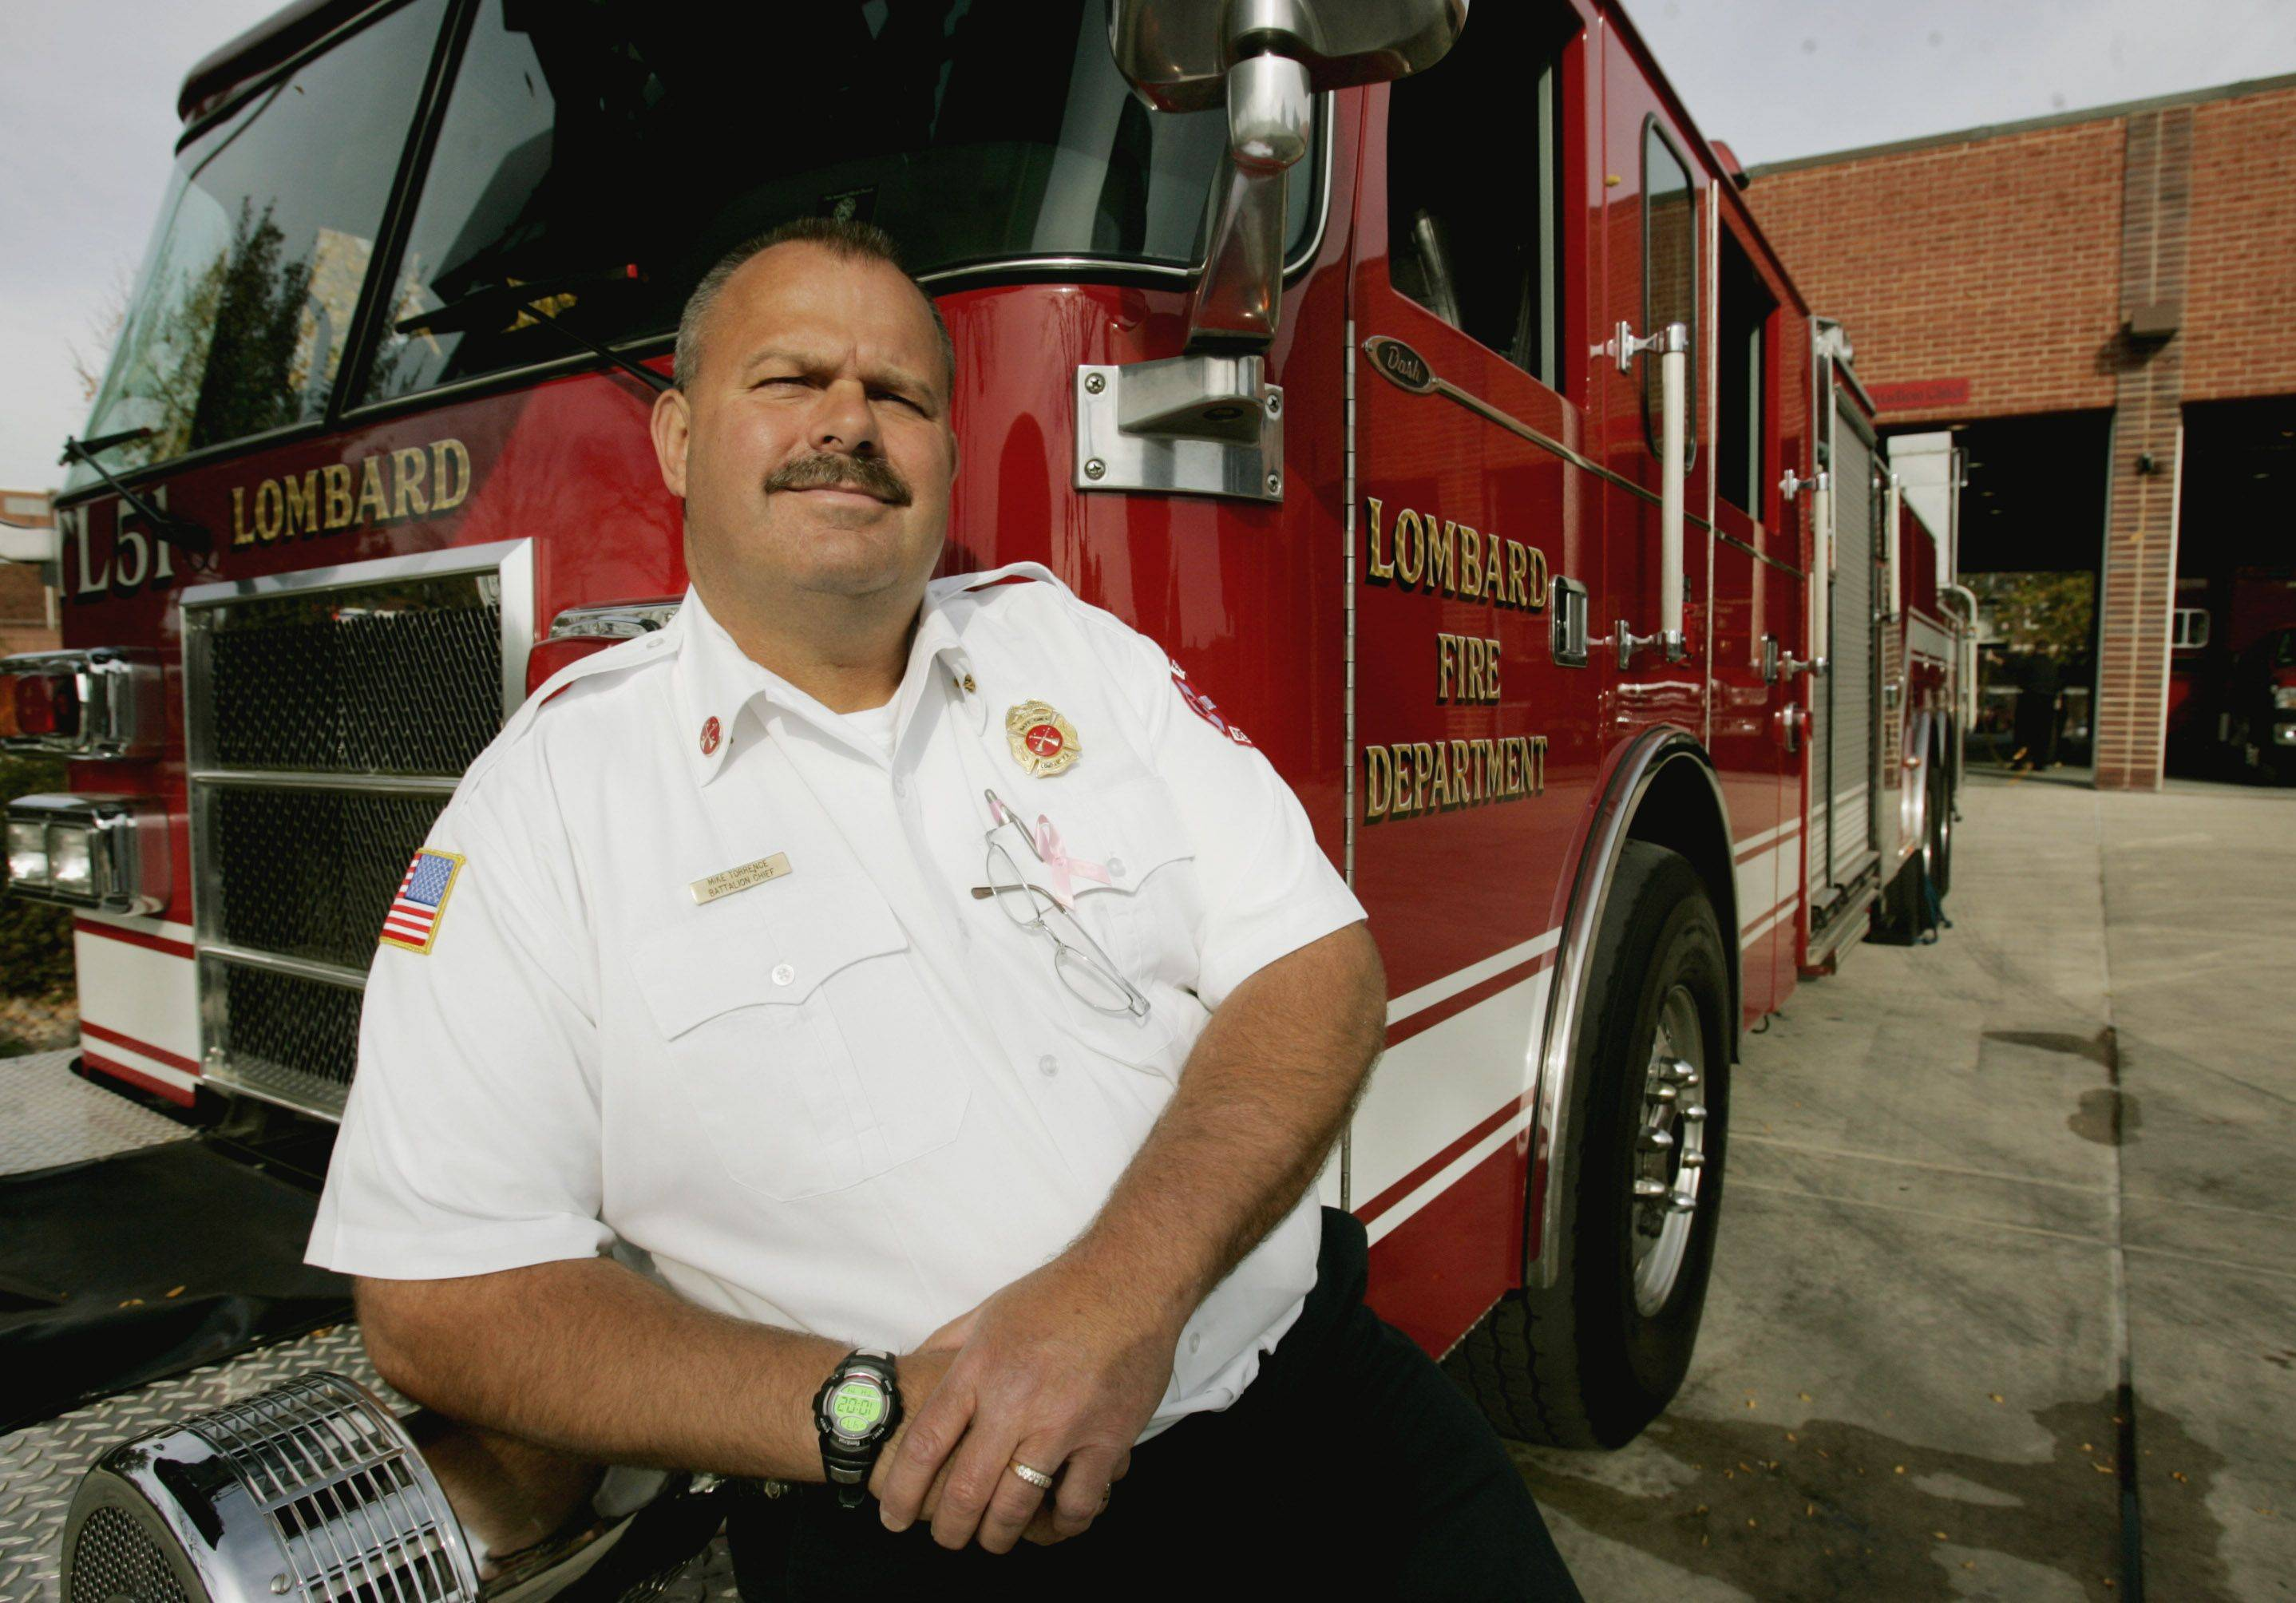 Lombard Fire Chief Mike Torrence took over Oct. 22, 2010, and is retiring Jan. 20 to become fire marshal for the Bristol Kendall Fire Department in Yorkville.